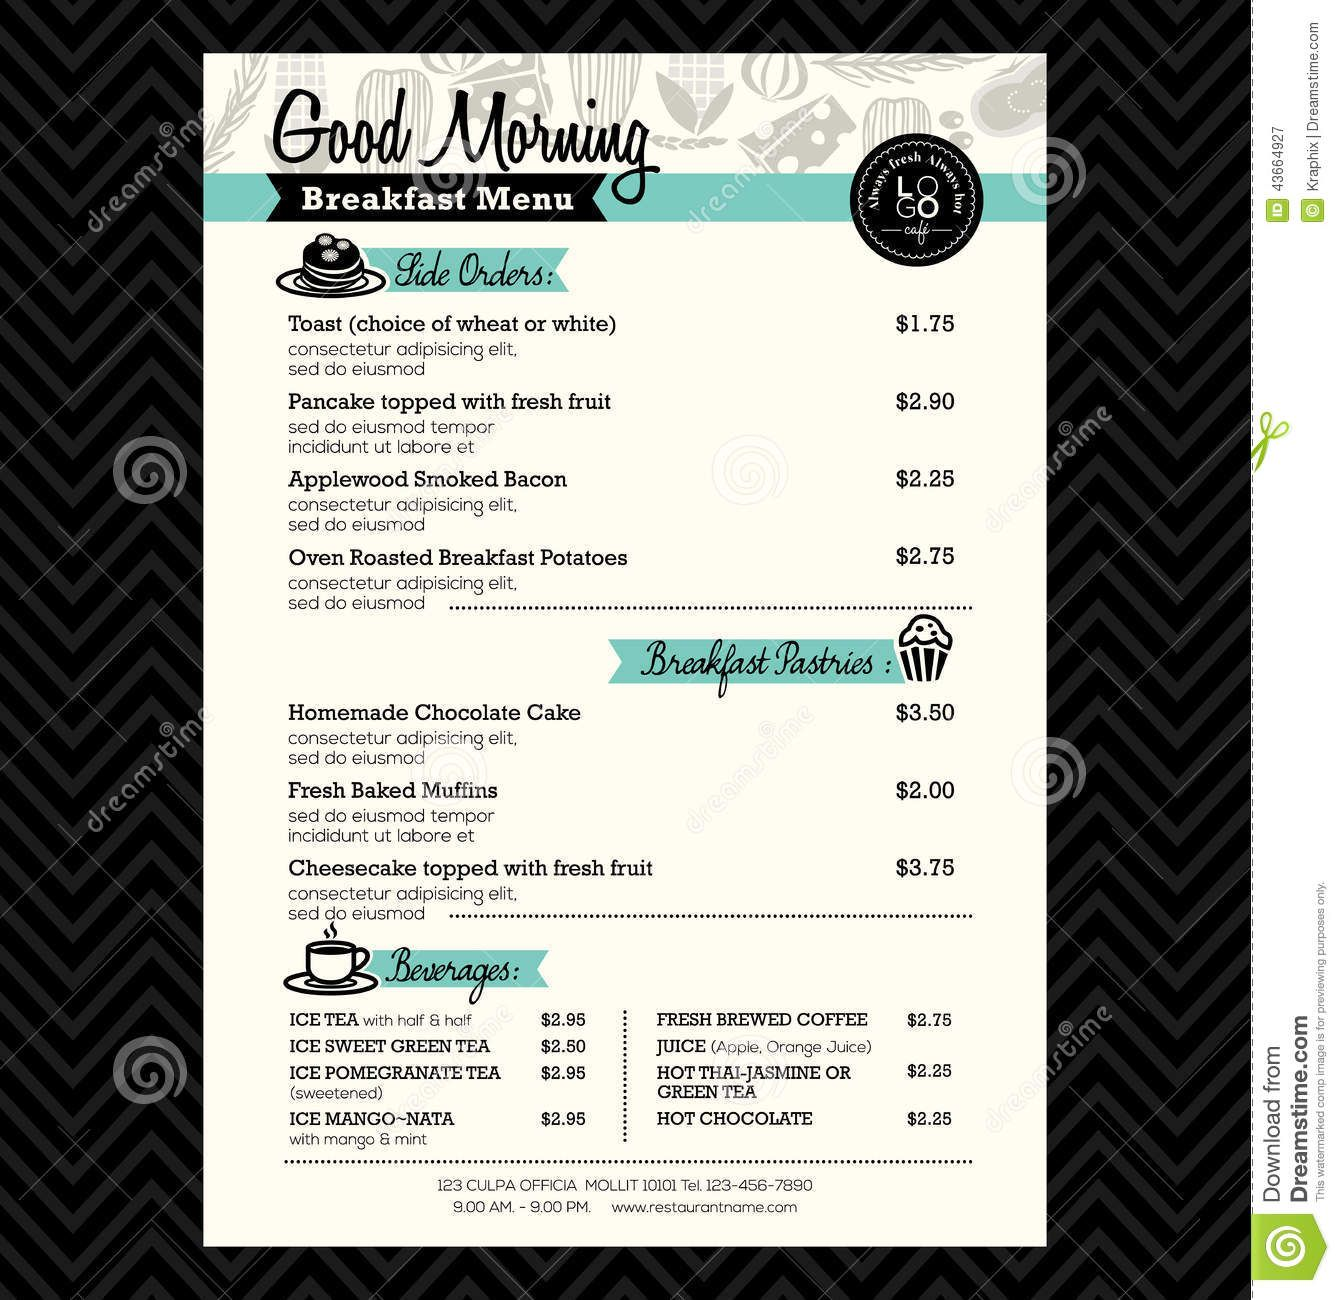 tapas menu template - breakfast menu design ideas google search menu design